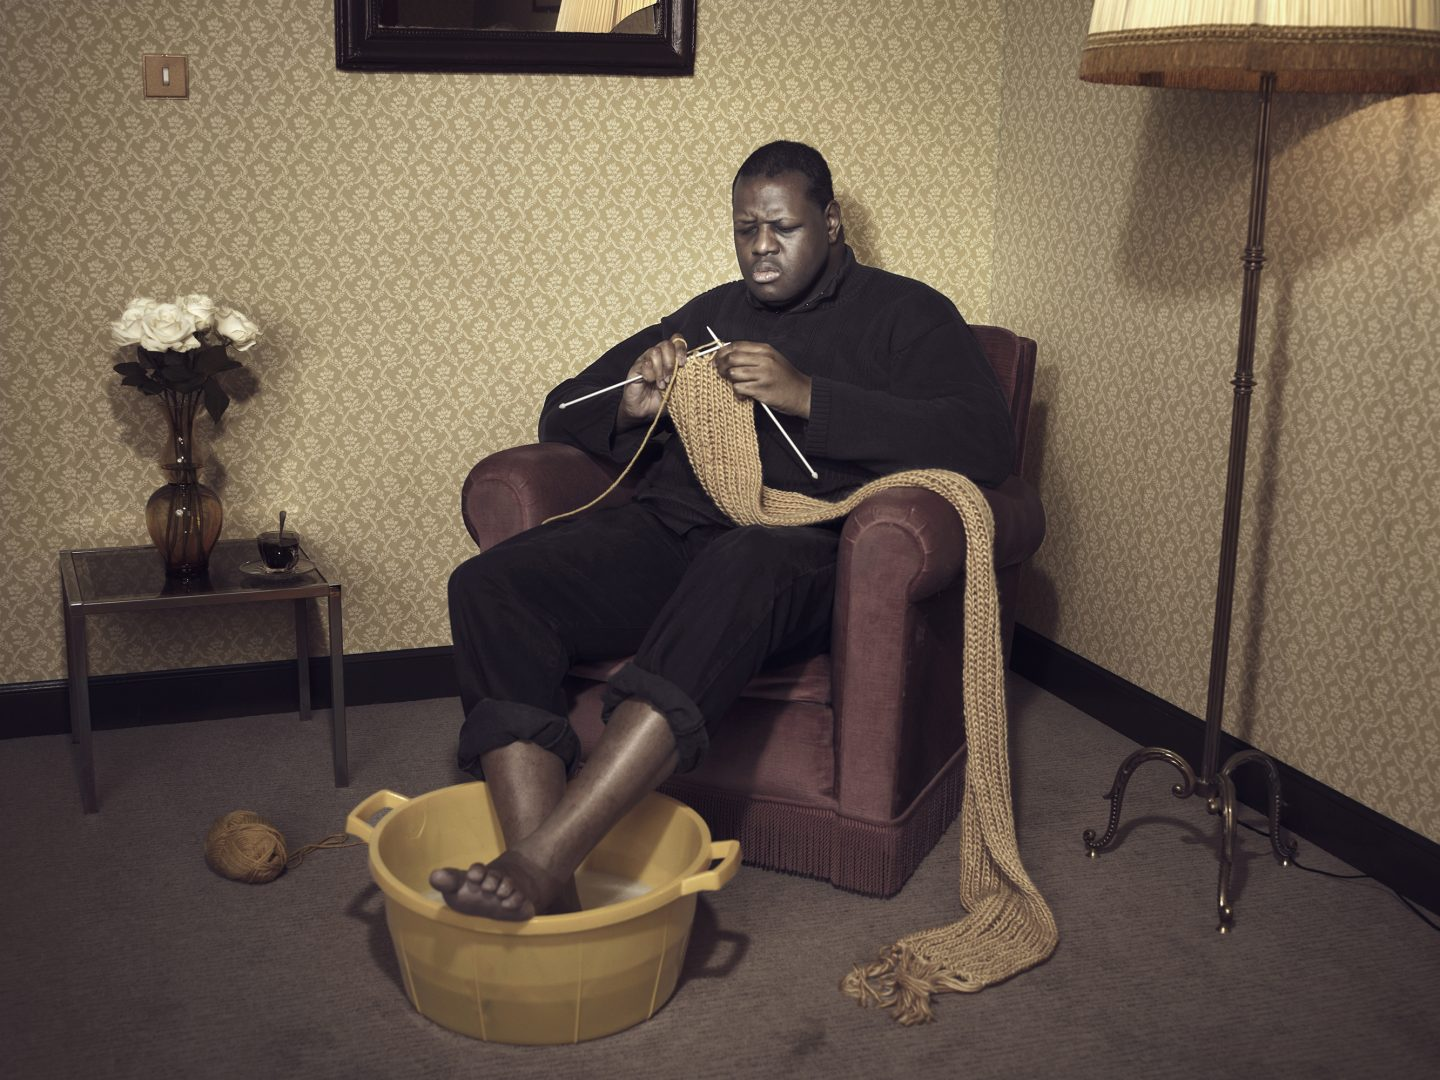 Black man sitting in armchair and knitting in room 42 by Stefan Rappo